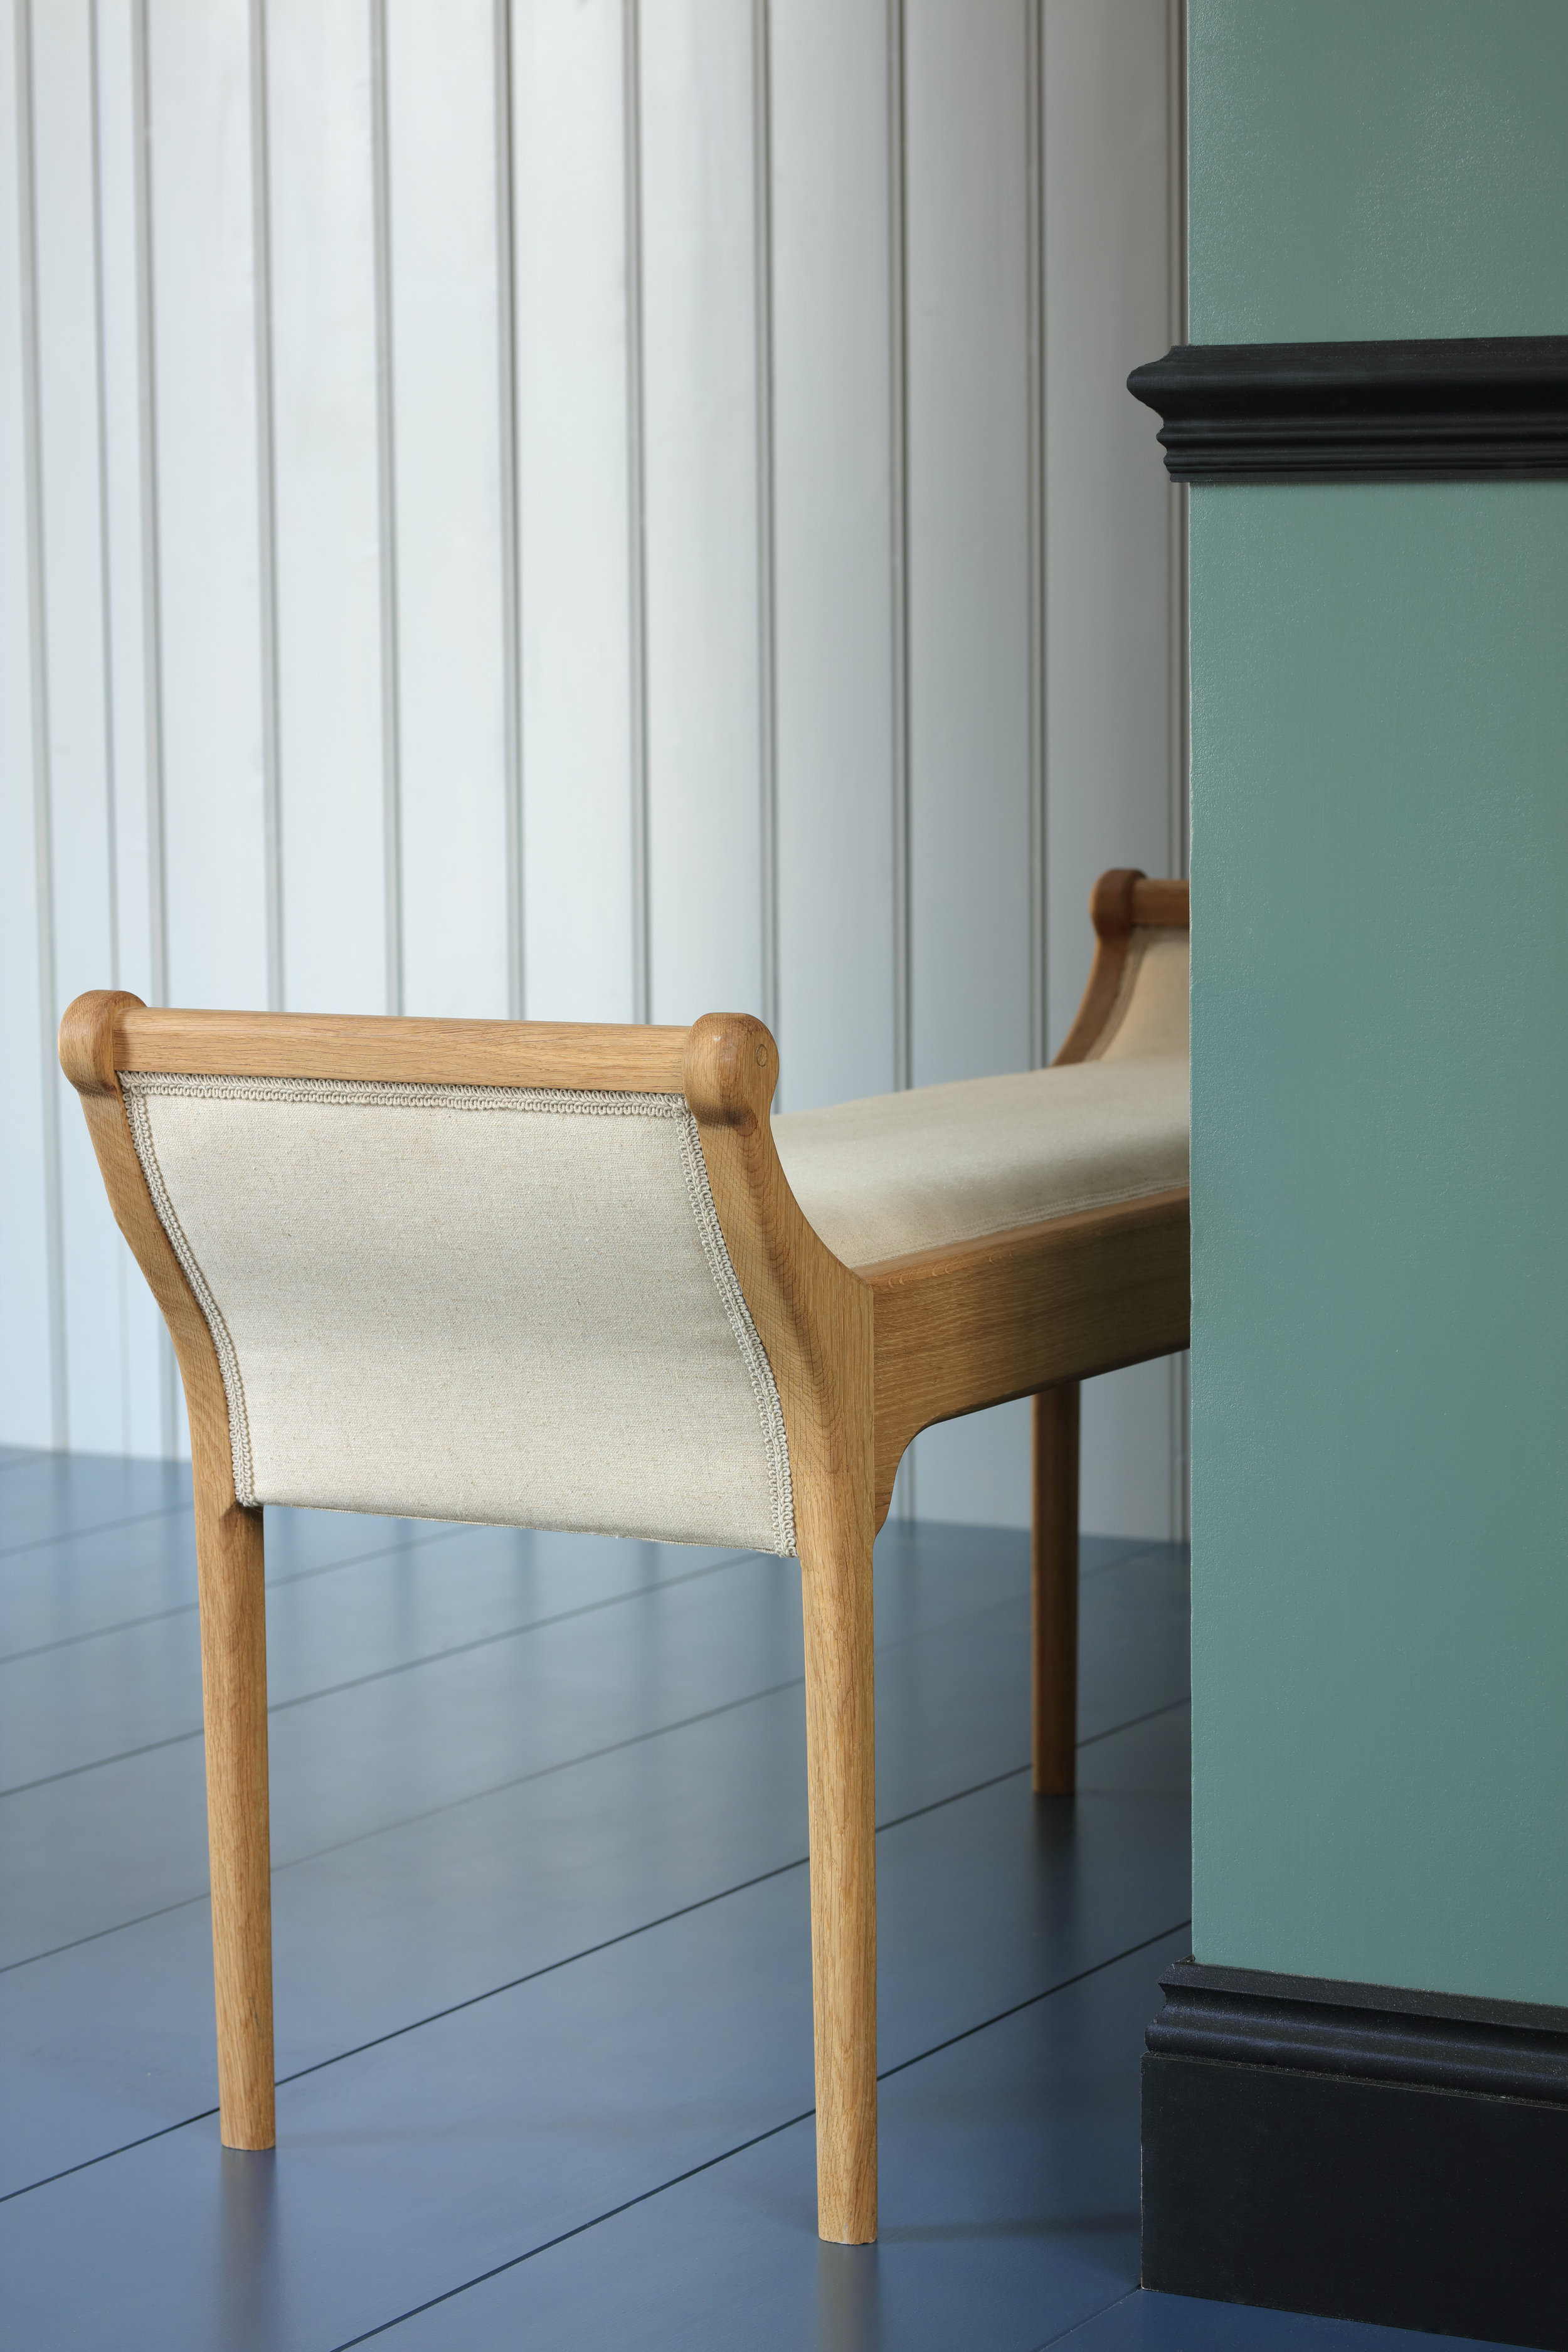 Bed-end Bench -